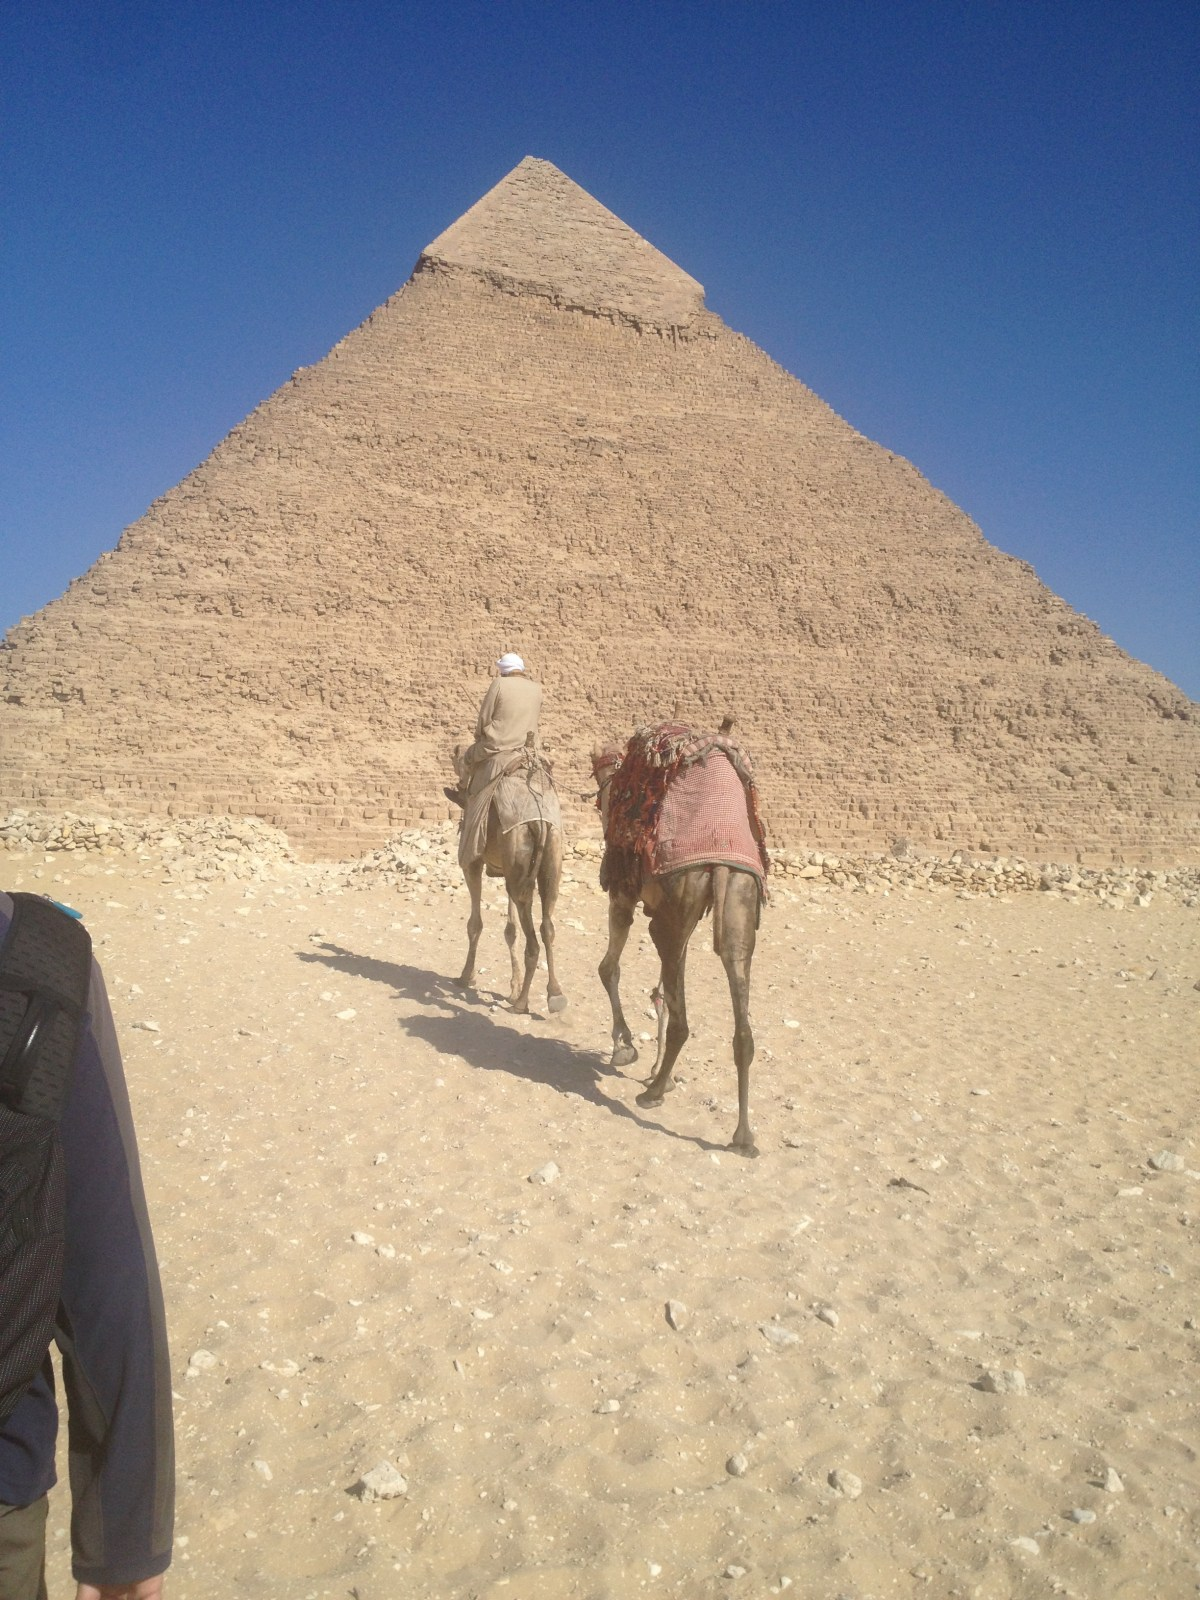 Egypt Tourism: Sandstorm at the Pyramids in Cairo